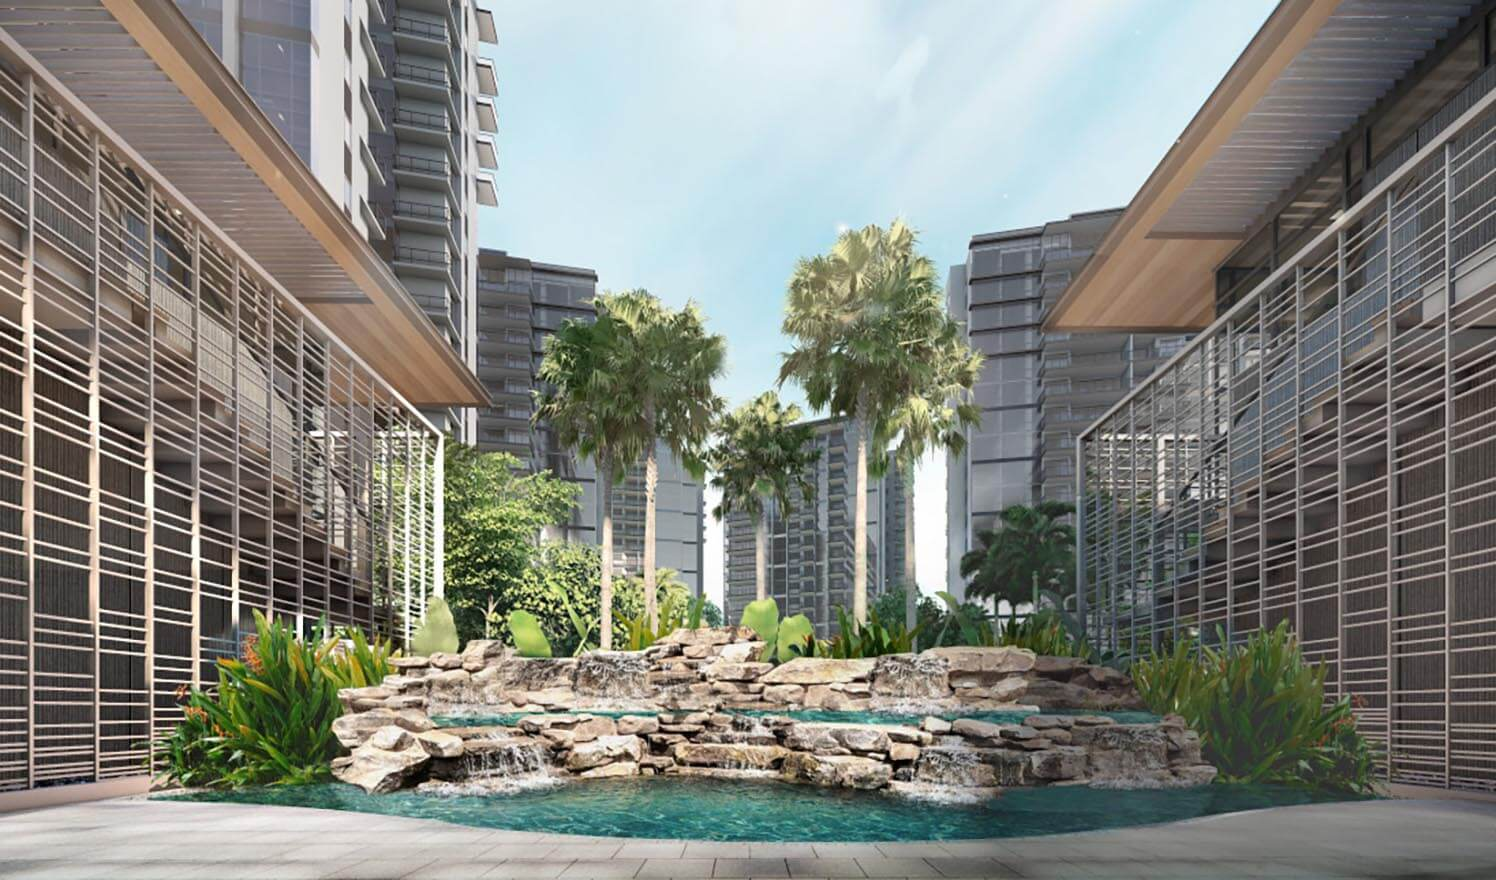 The best Residence in Singapore is Florence Residences.